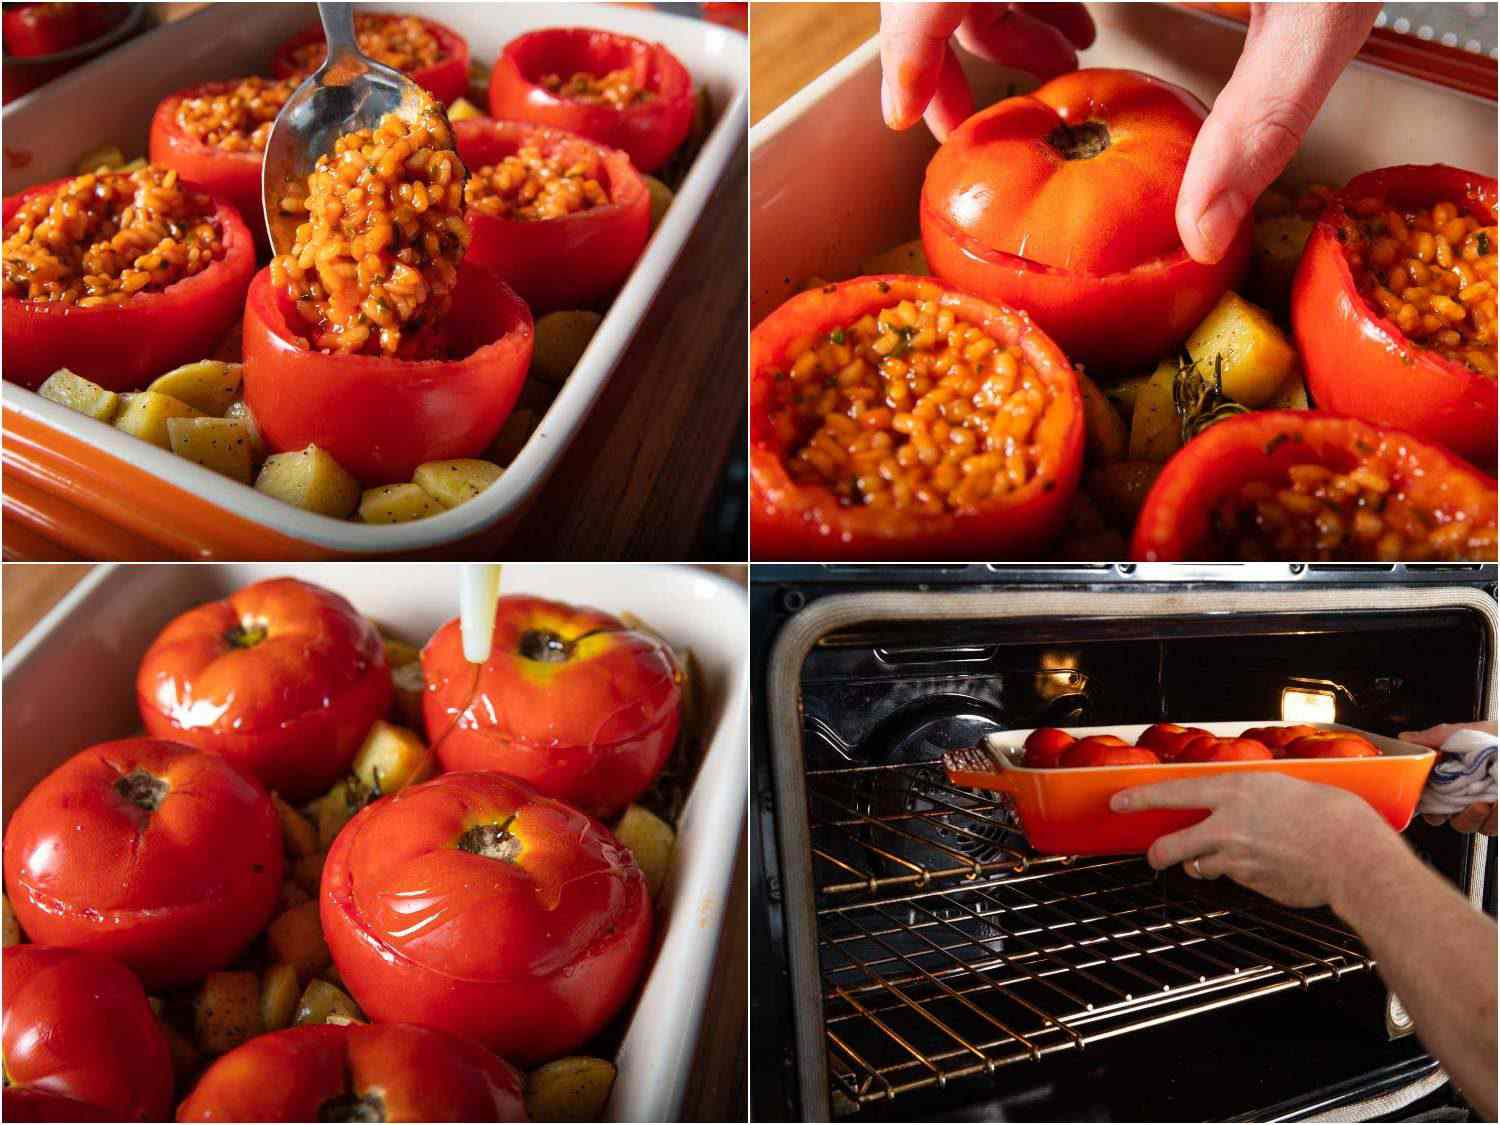 Photo collage of filling hollowed-out tomatoes with rice stuffing, and roasting them in a baking dish with potatoes.